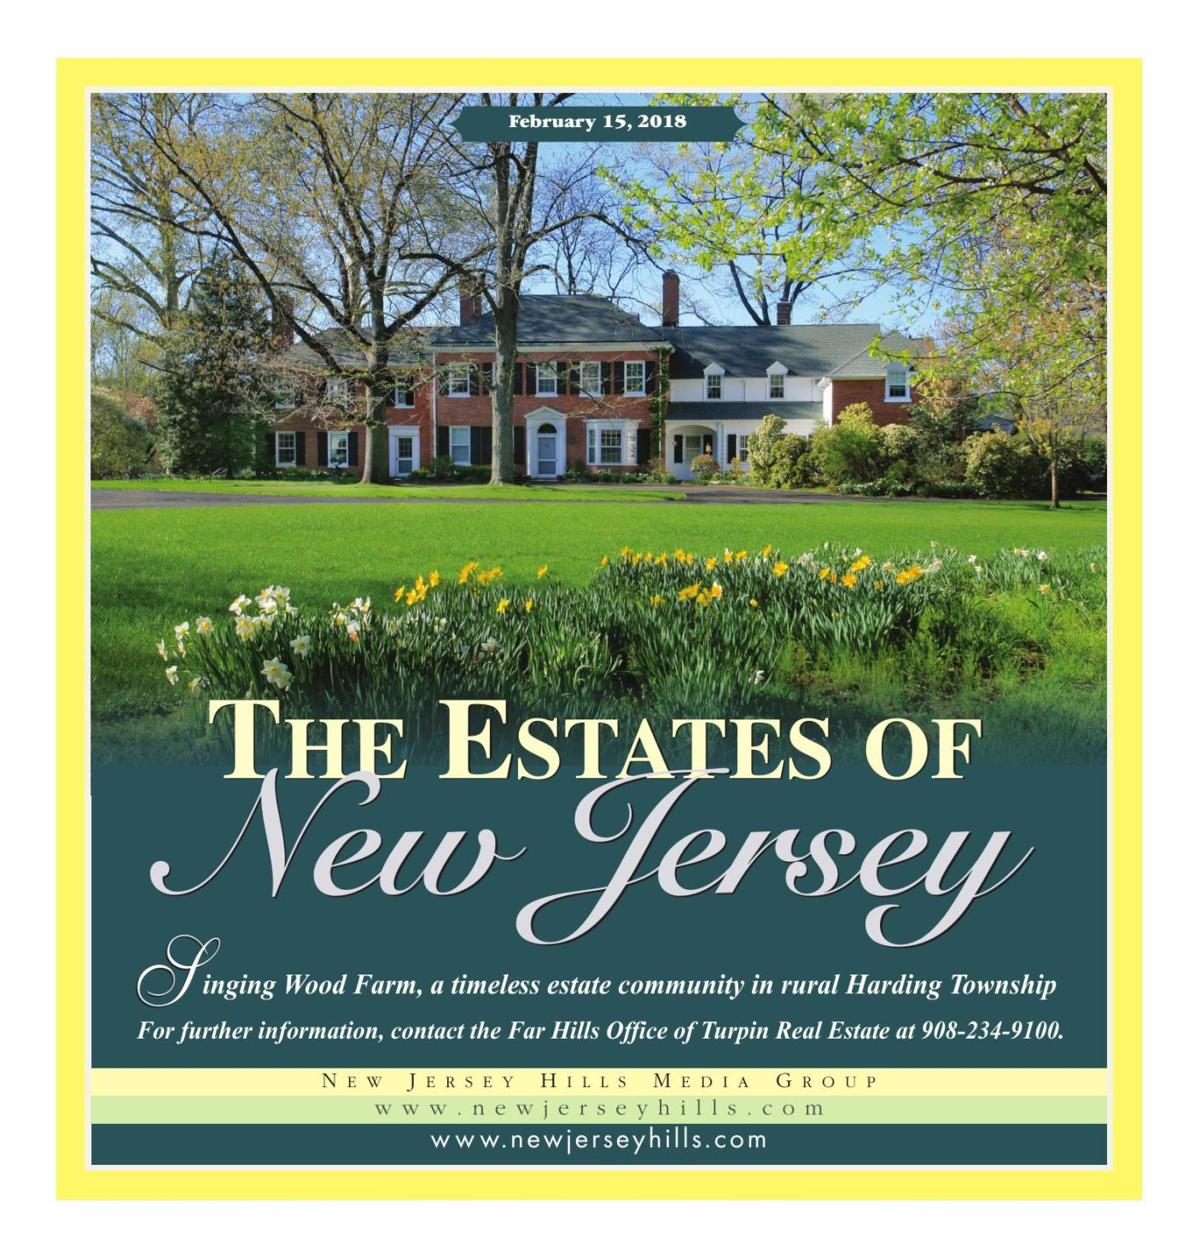 Estates of New Jersey - February 15, 2018